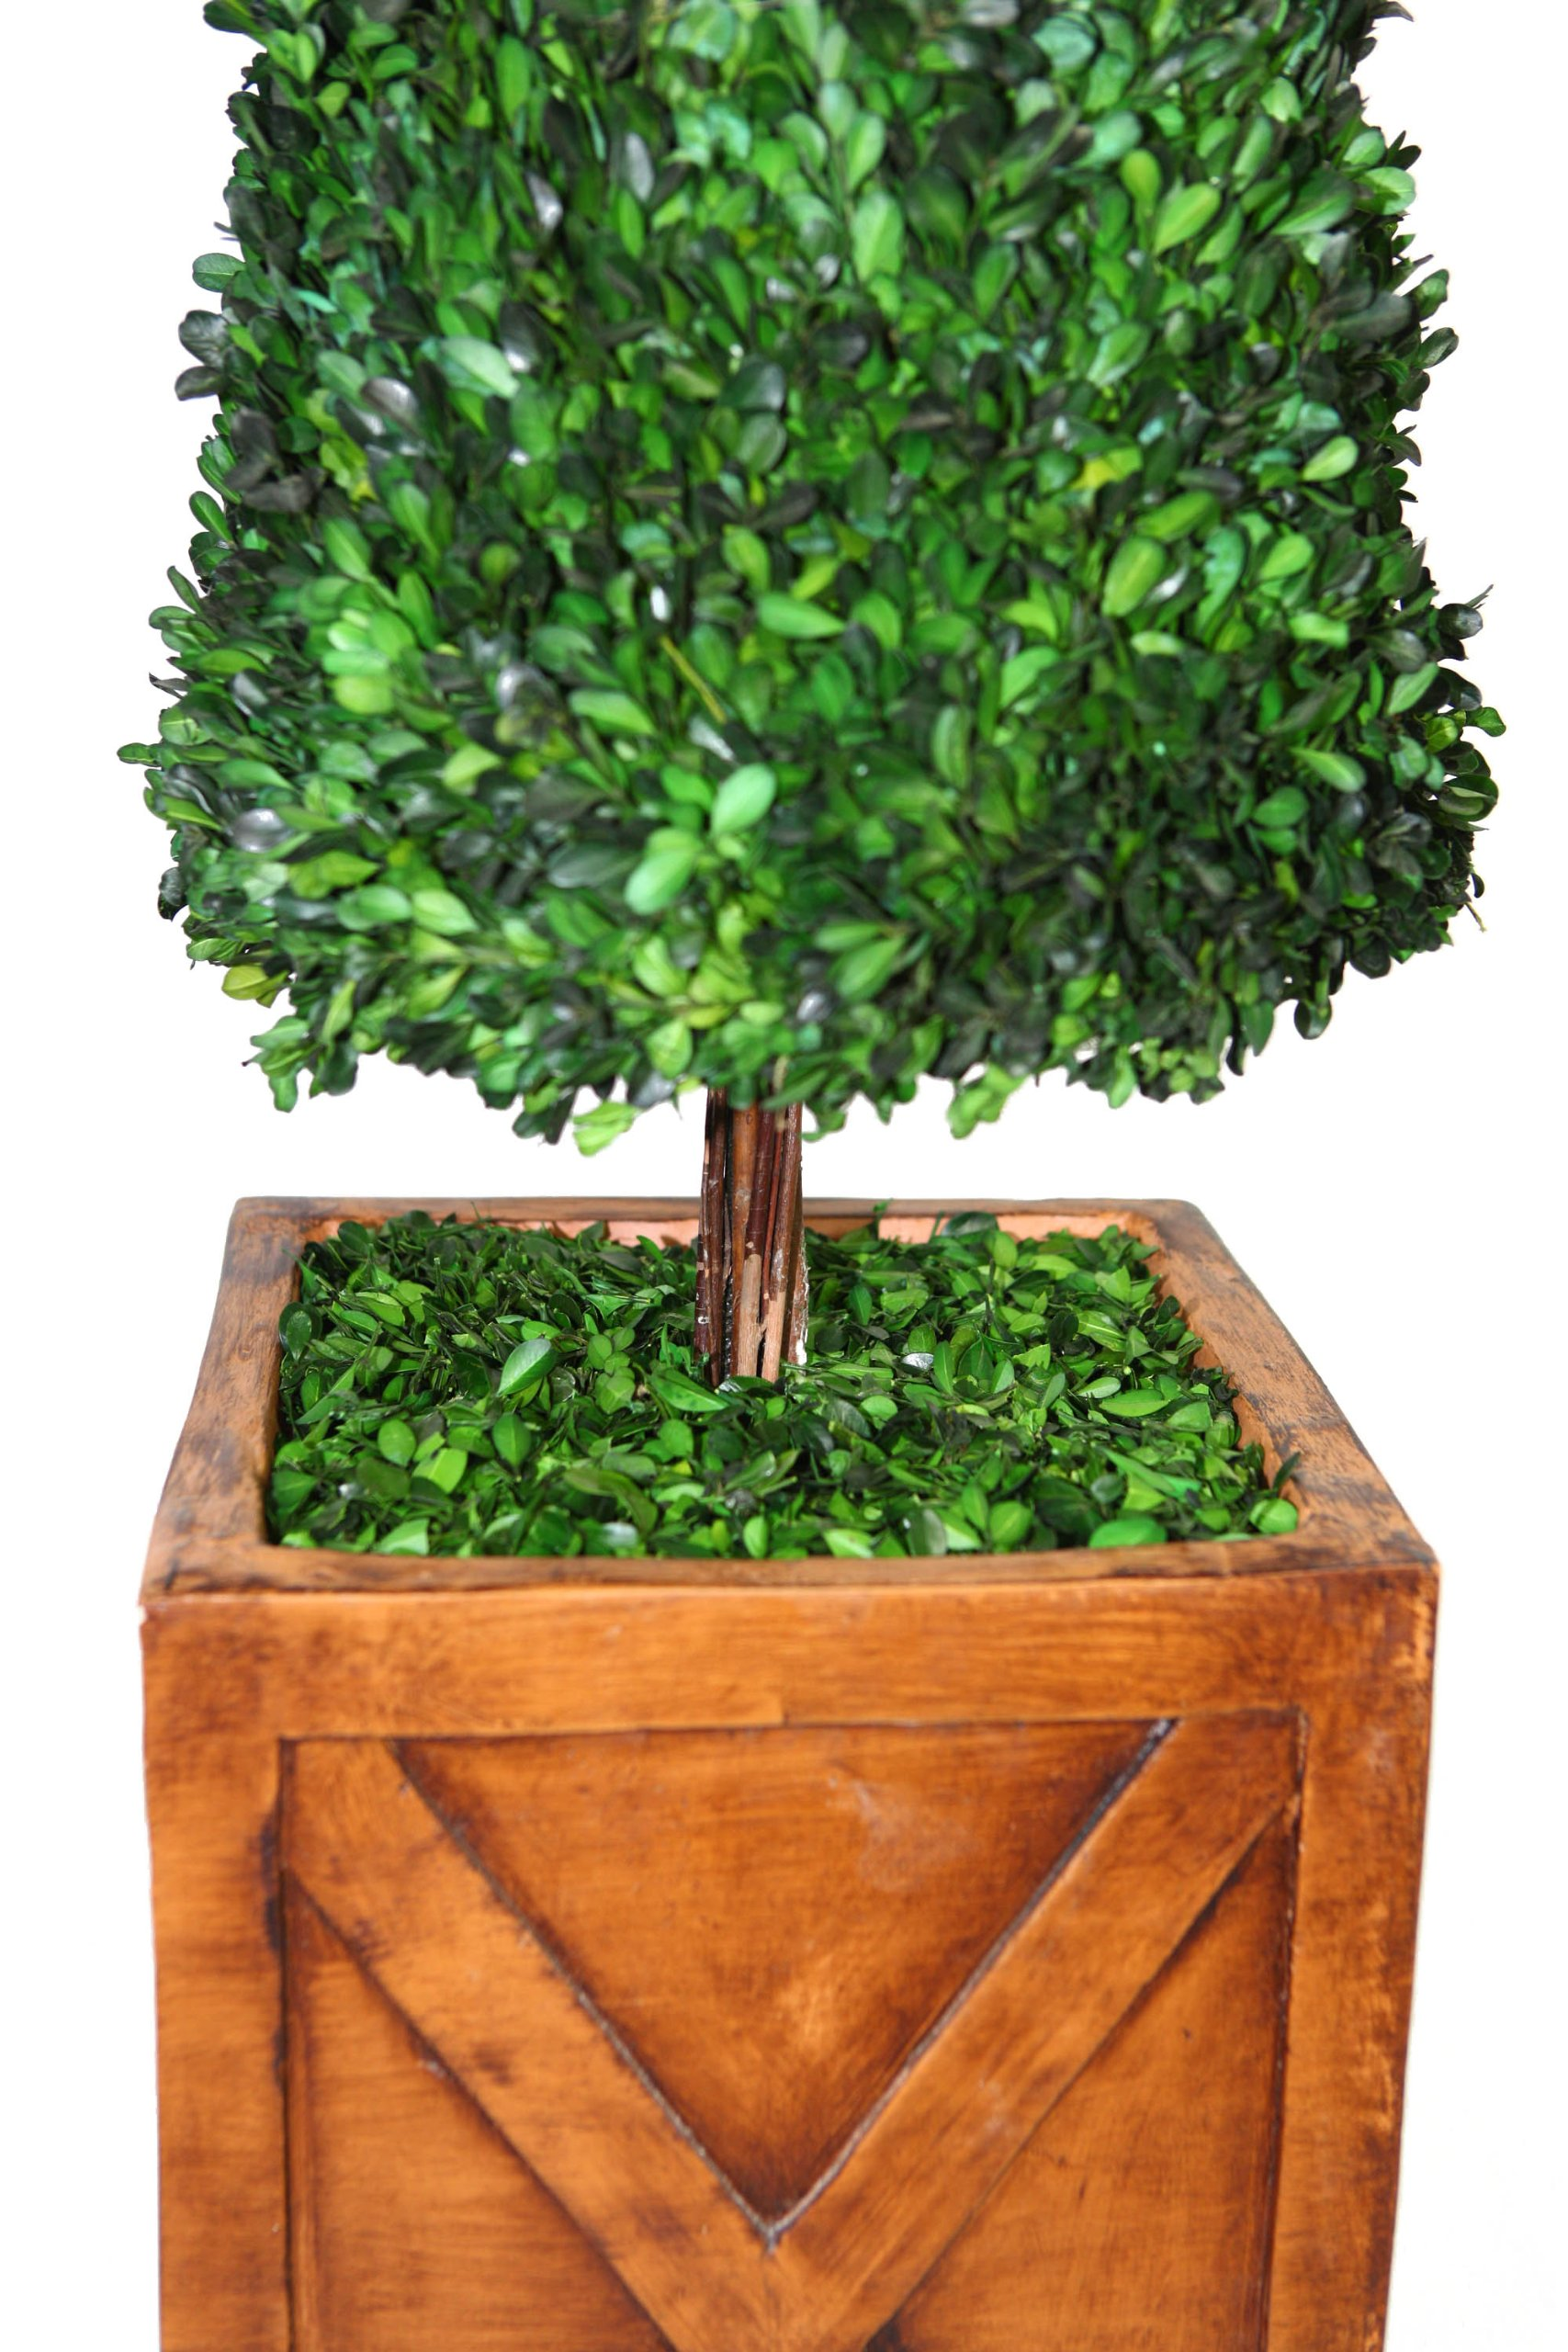 Laura Ashley 53 Inch Tall Preserved Natural Spiral Boxwood Cone Topiary in 13 Inch Fiberstone Planter by Laura Ashley (Image #2)